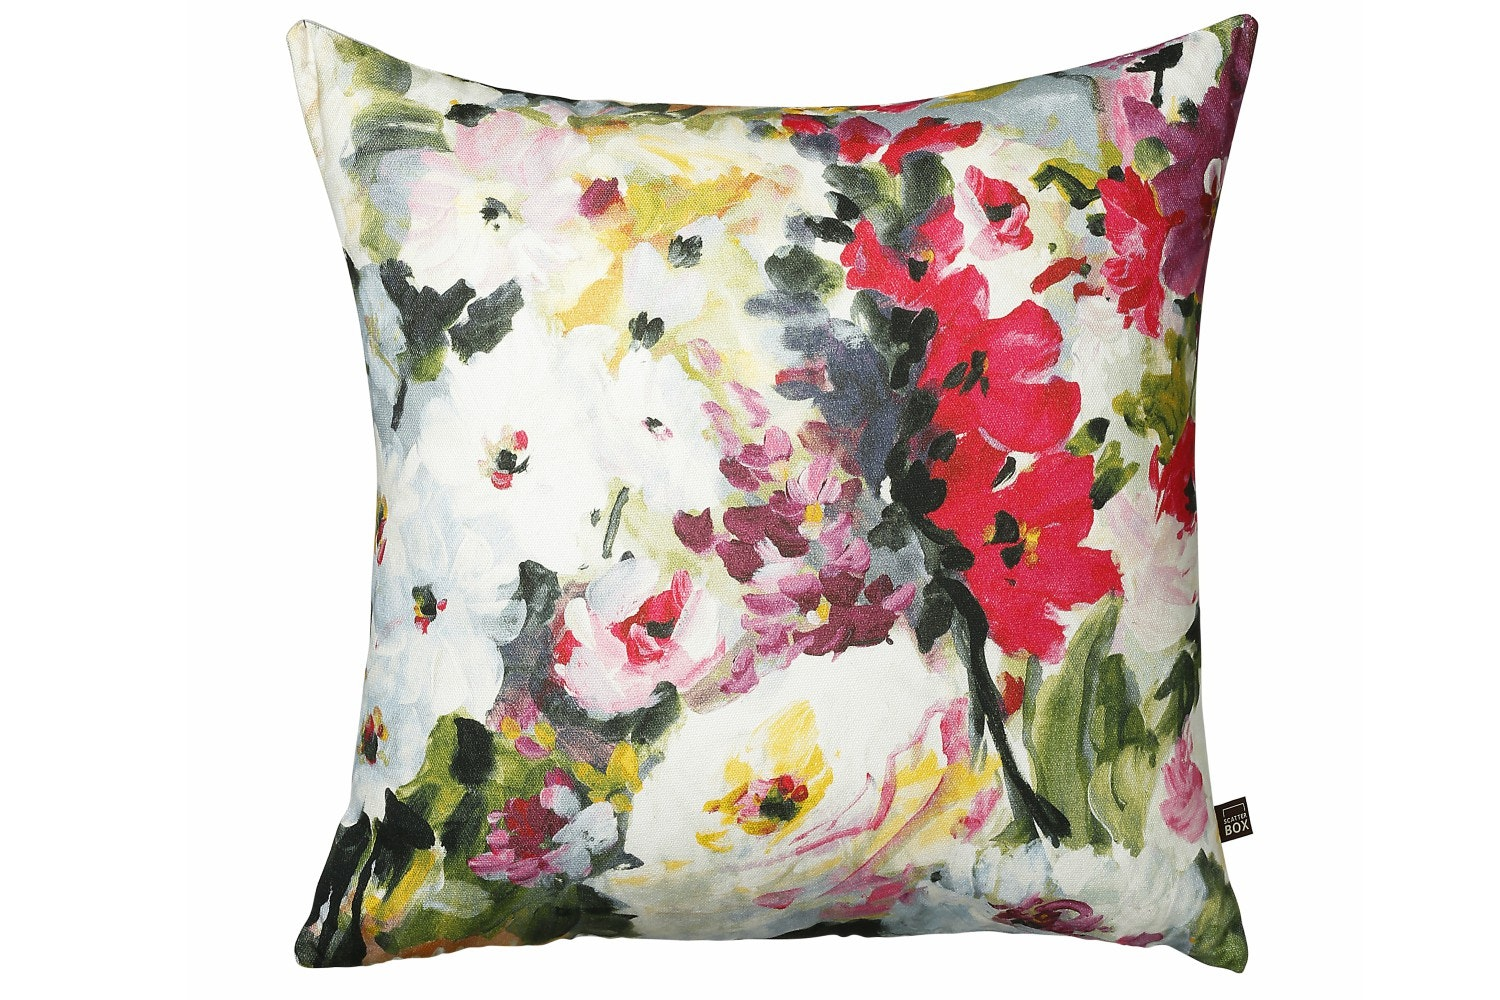 Scatterbox Watercolour Floral Cushion | 58x58